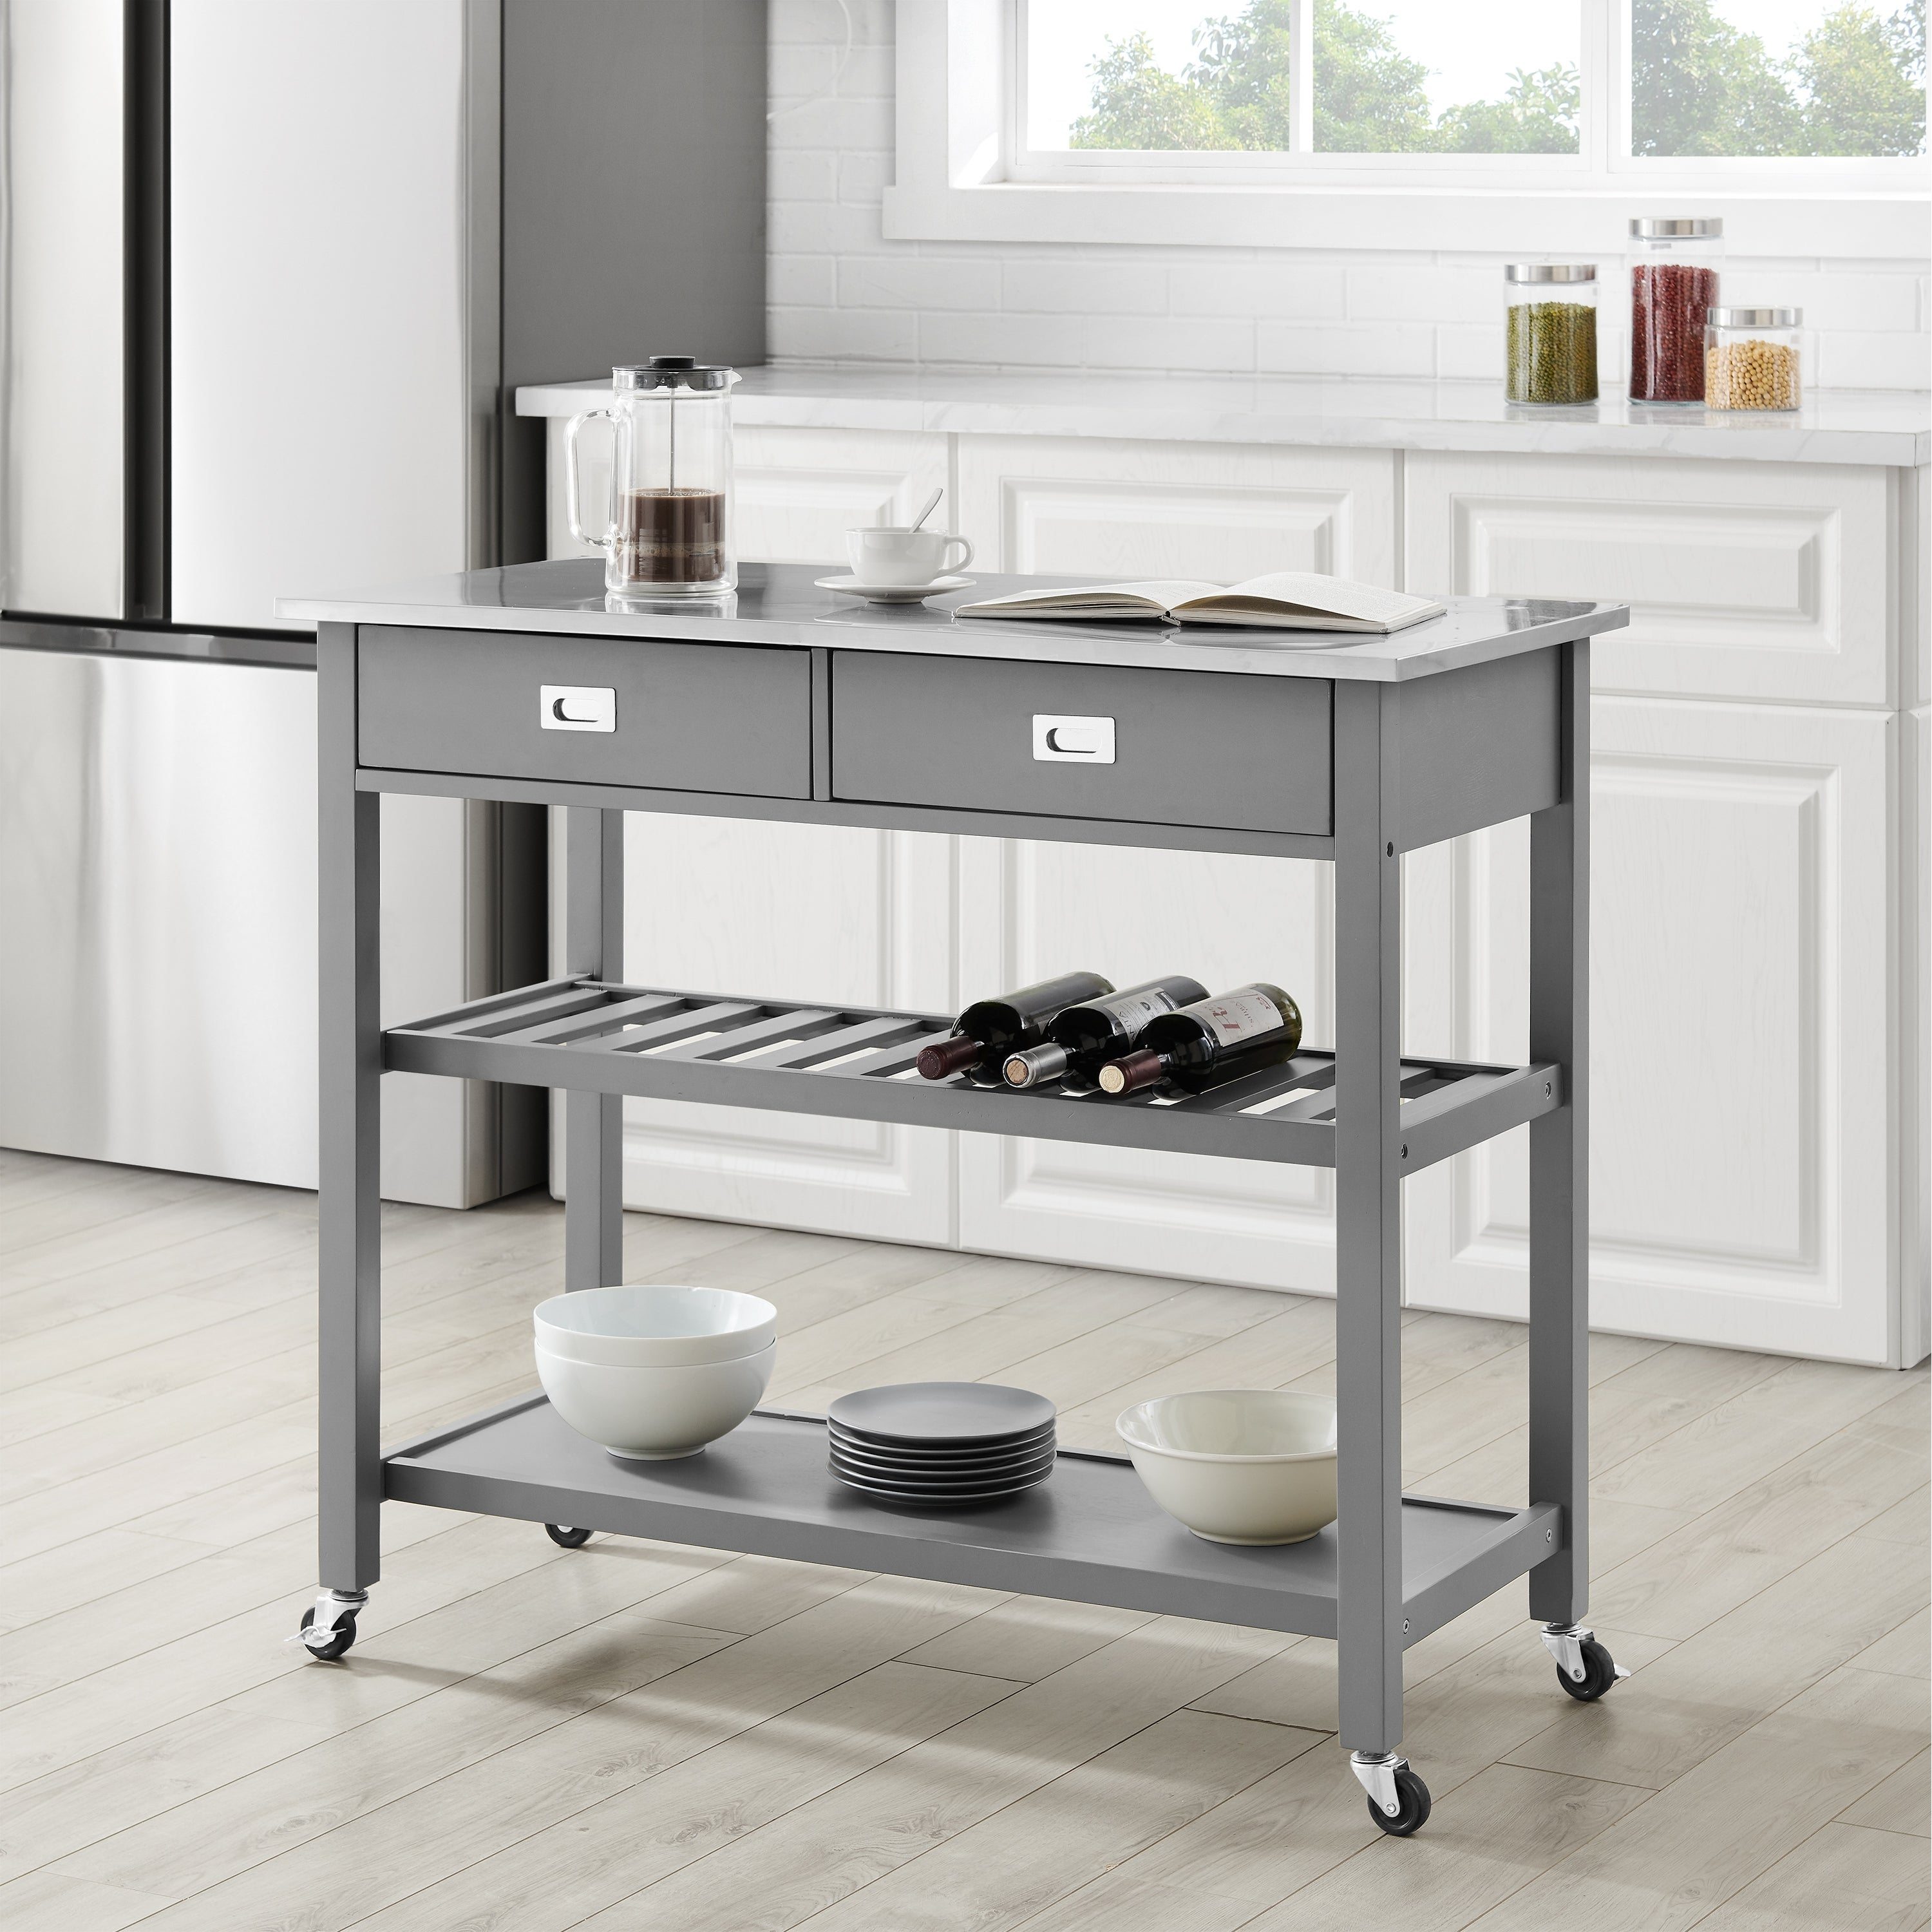 Chloe Stainless Steel Top Kitchen Island Cart 37 H X 42 W X 20 D On Sale Overstock 31104174